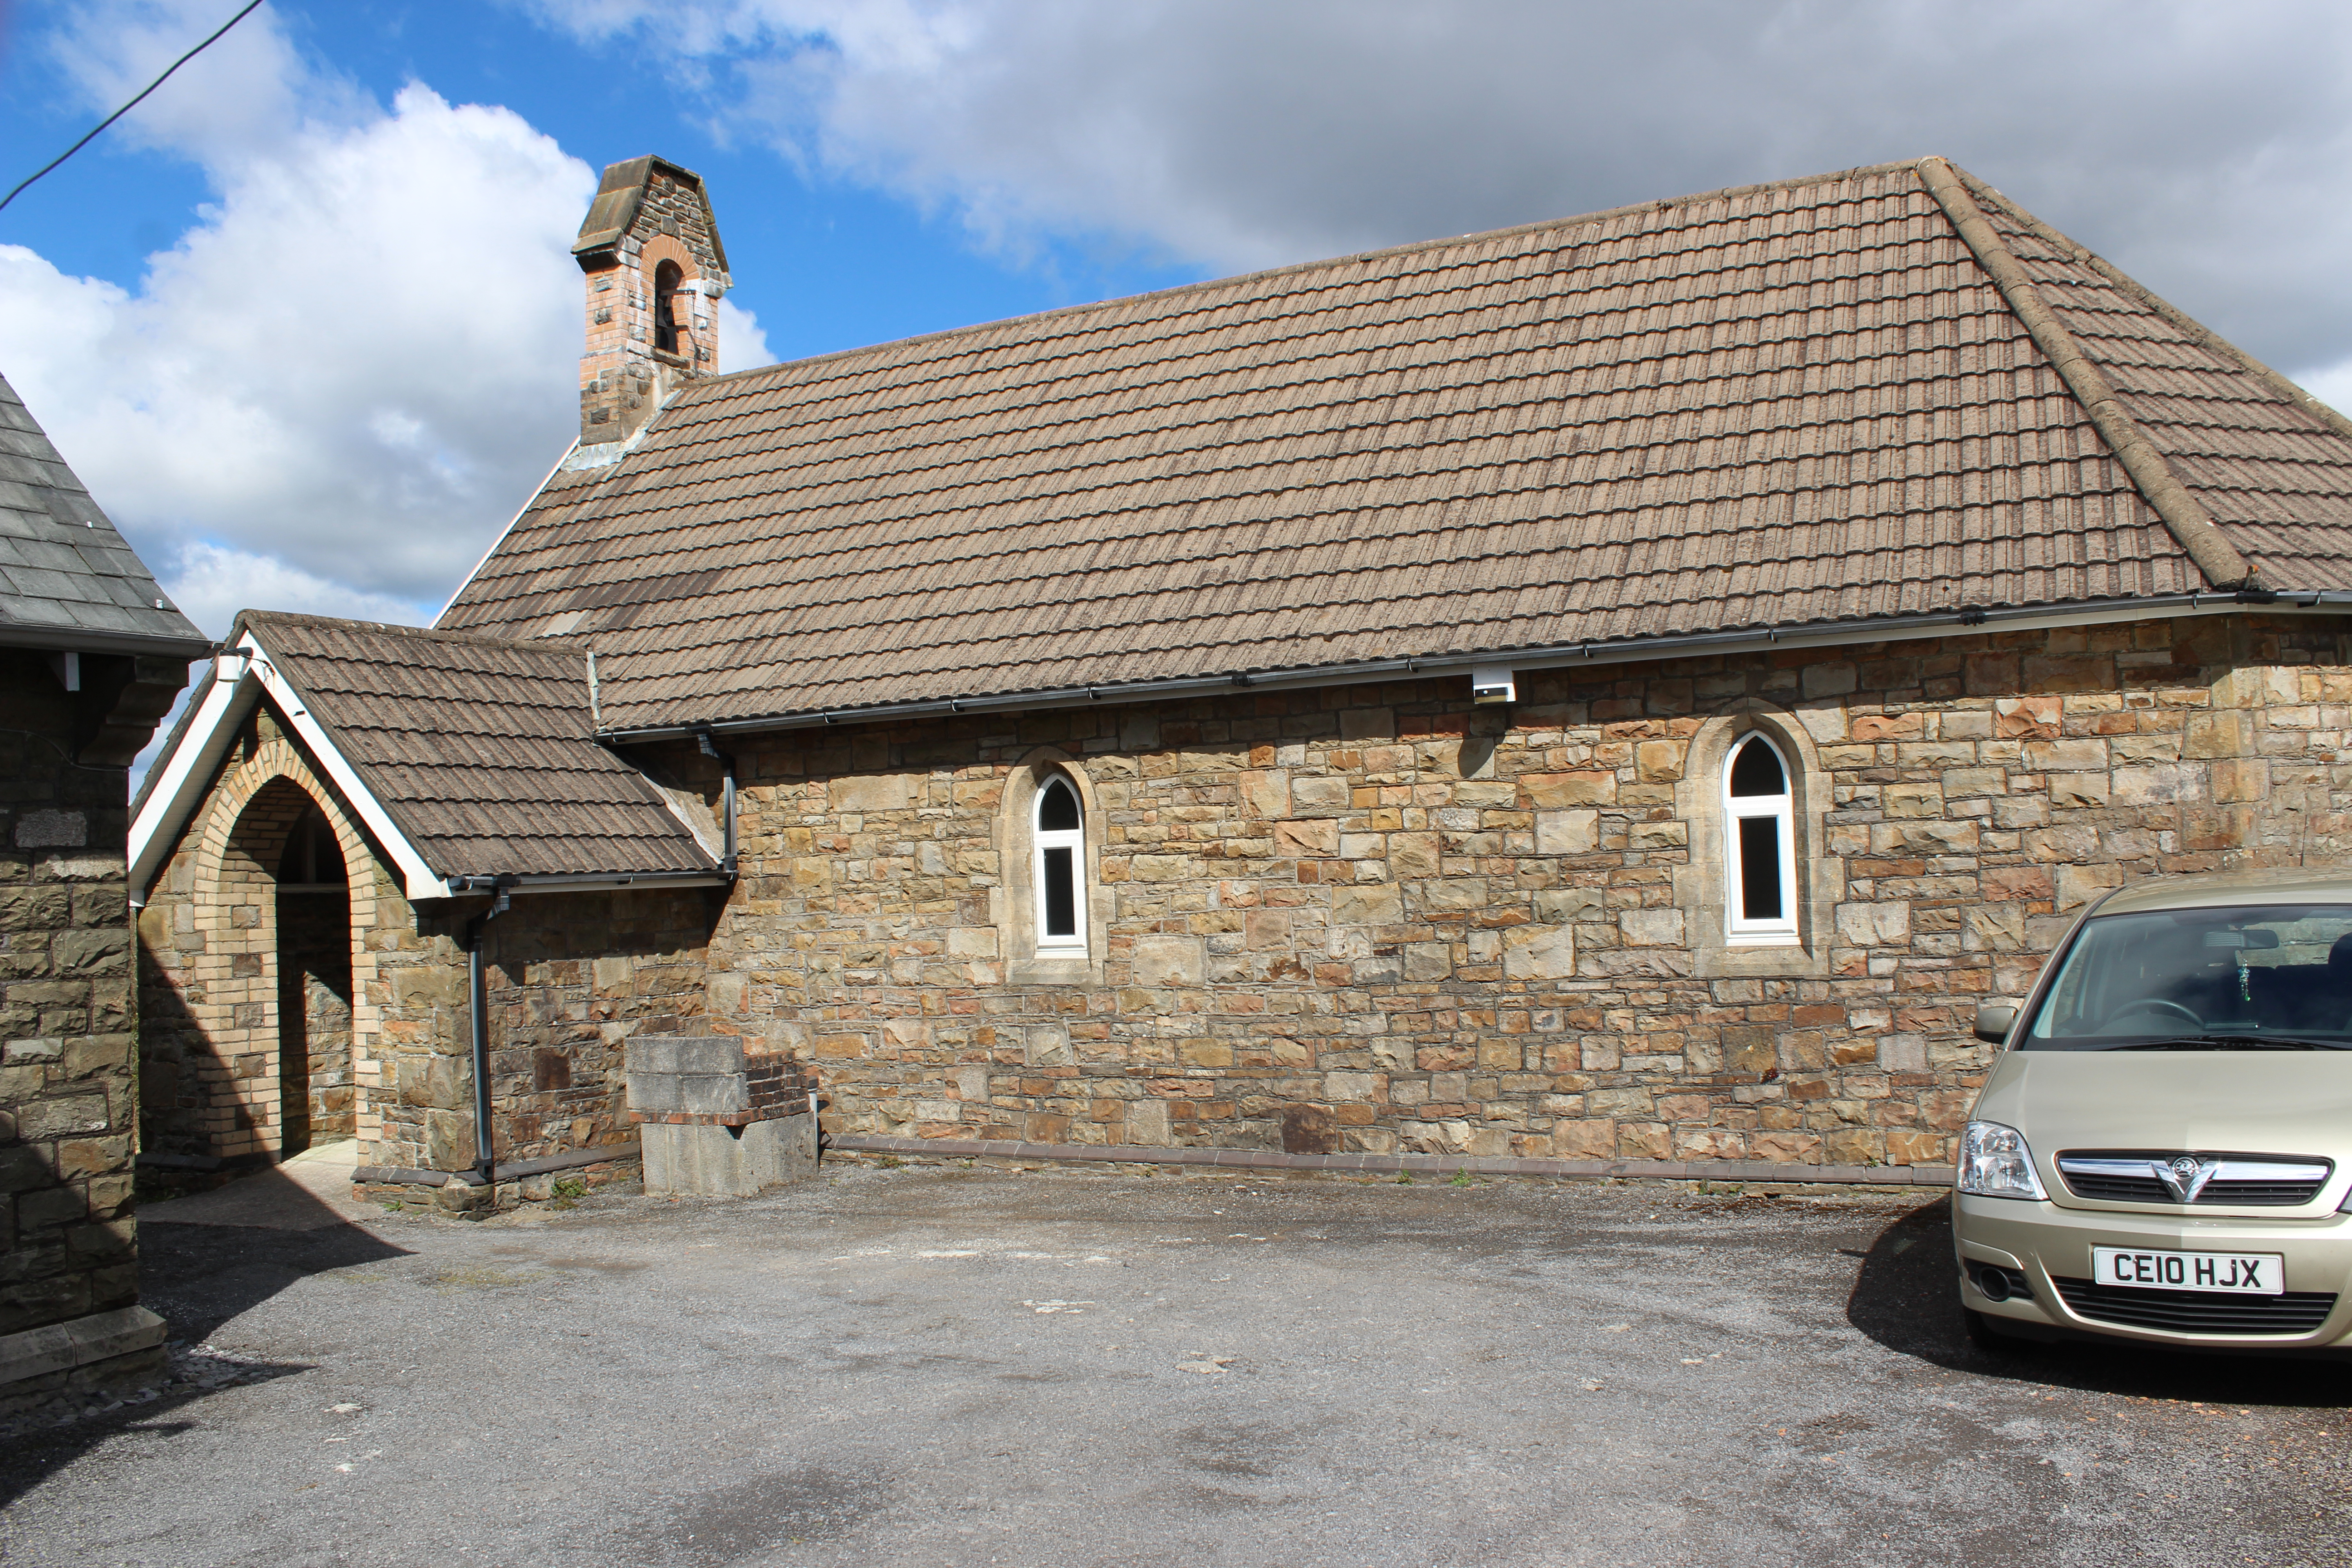 St Sulien's is tucked away in a quiet corner of the village of Tumble